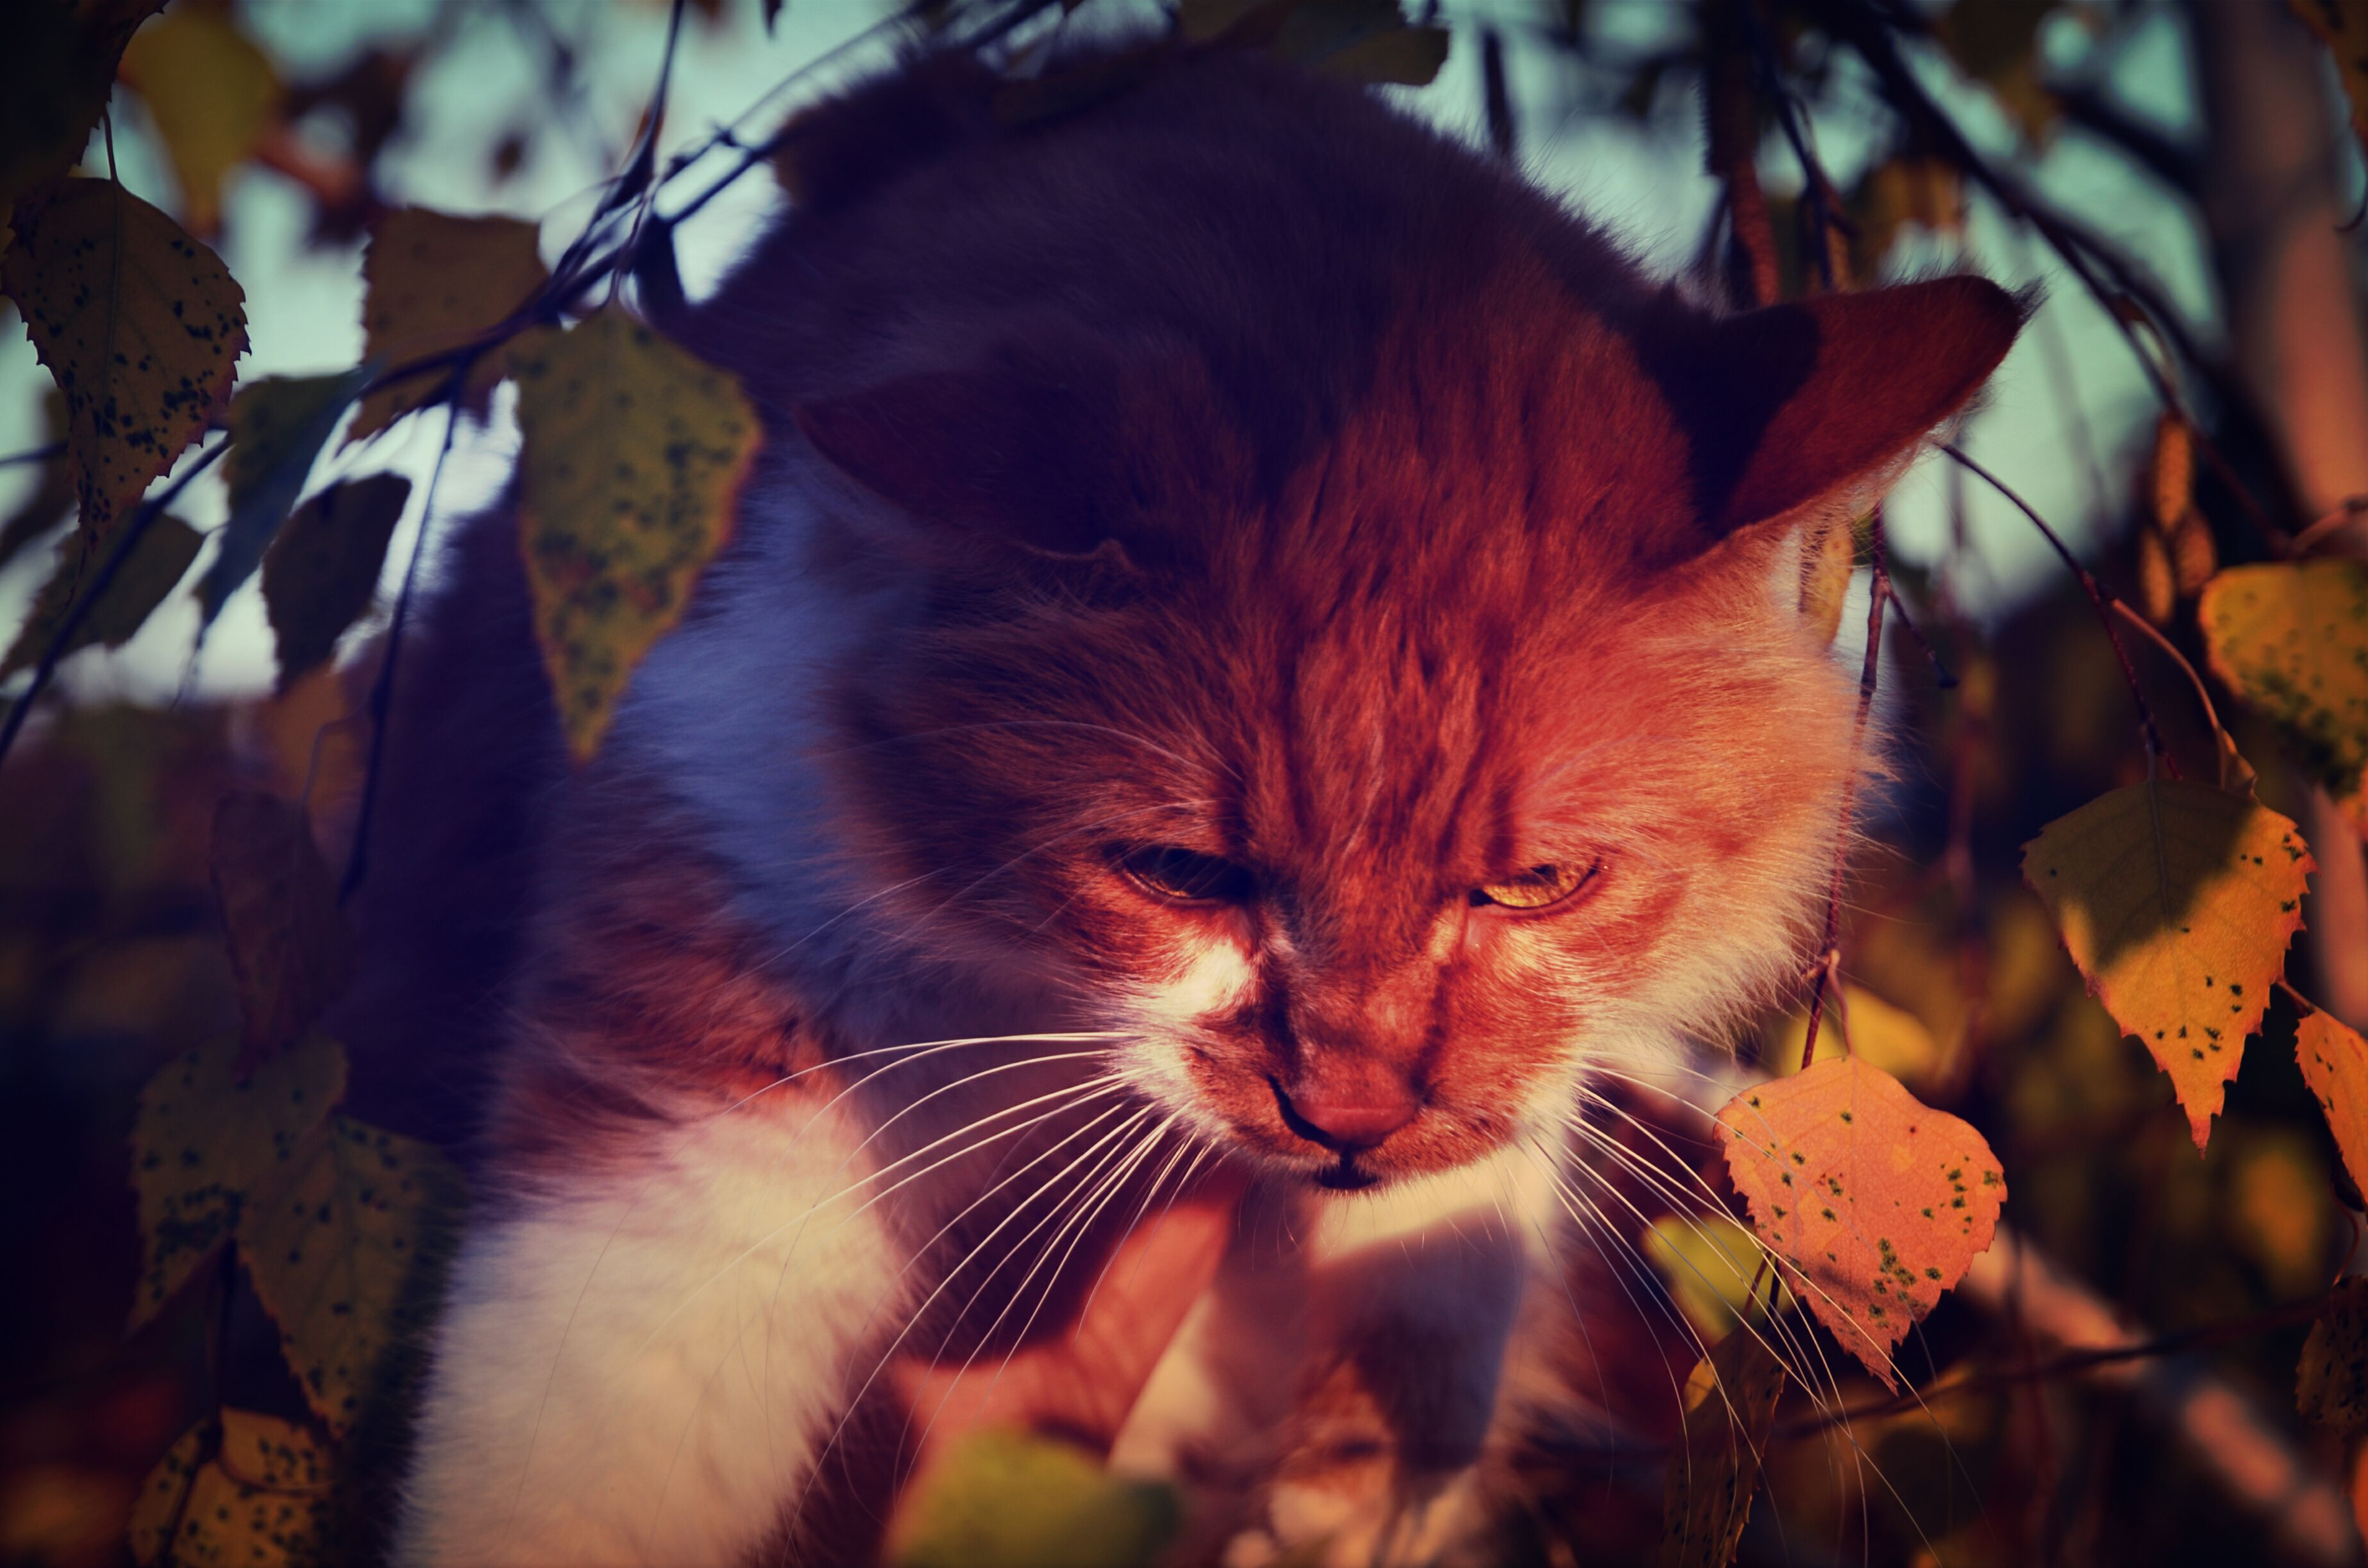 animal themes, mammal, one animal, domestic cat, focus on foreground, domestic animals, whisker, close-up, pets, feline, leaf, cat, brown, nature, selective focus, day, outdoors, portrait, plant, no people